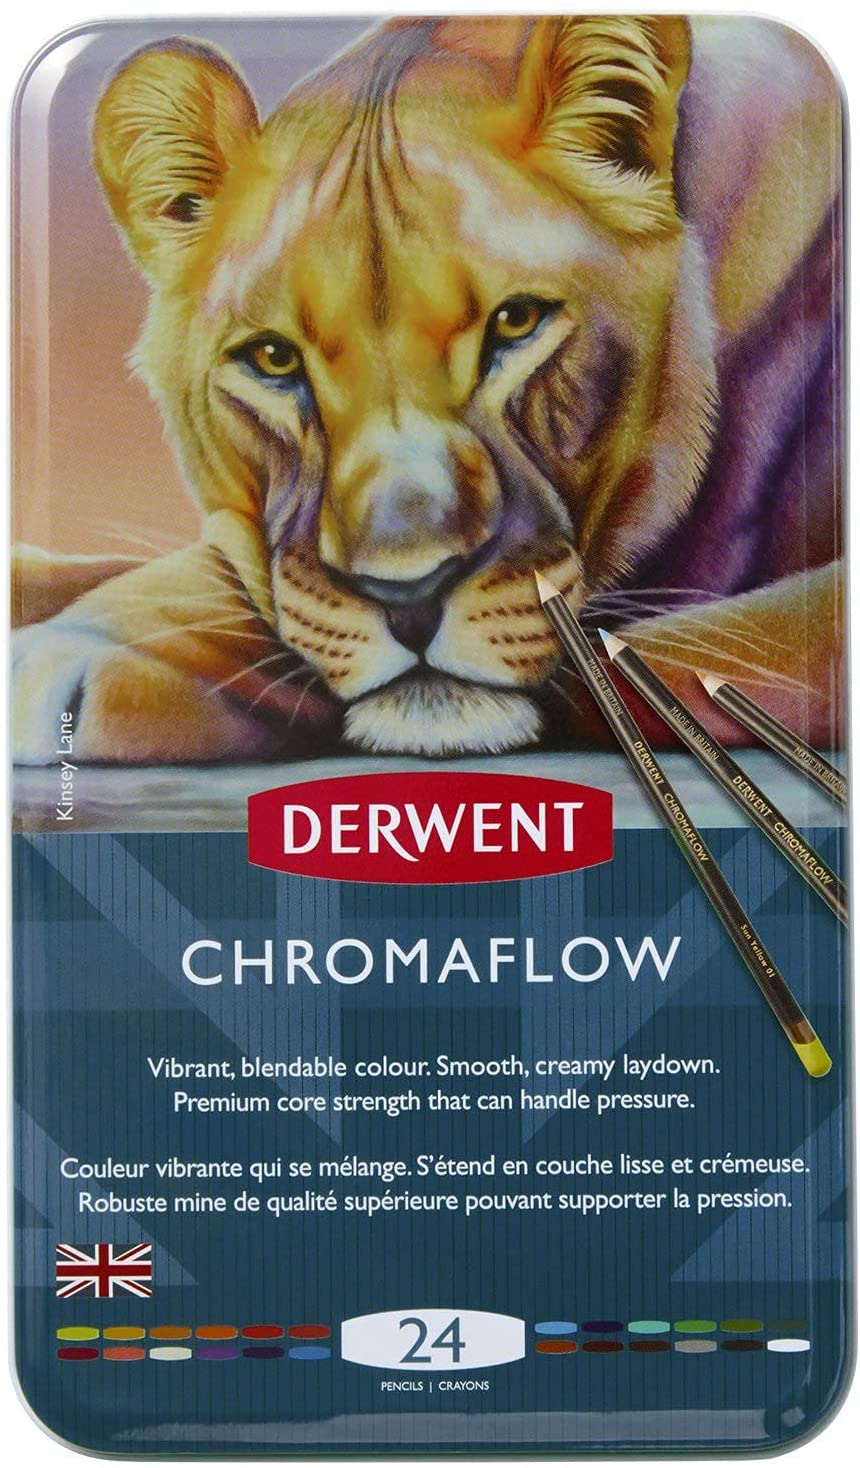 Derwent Chromaflow Colored Pencils | Art Supplies for Drawing, Sketching, Adult Coloring | Premier, Strong Soft Core Multicolor Color Pencils, Blending | Professional Quality | 24 Pack